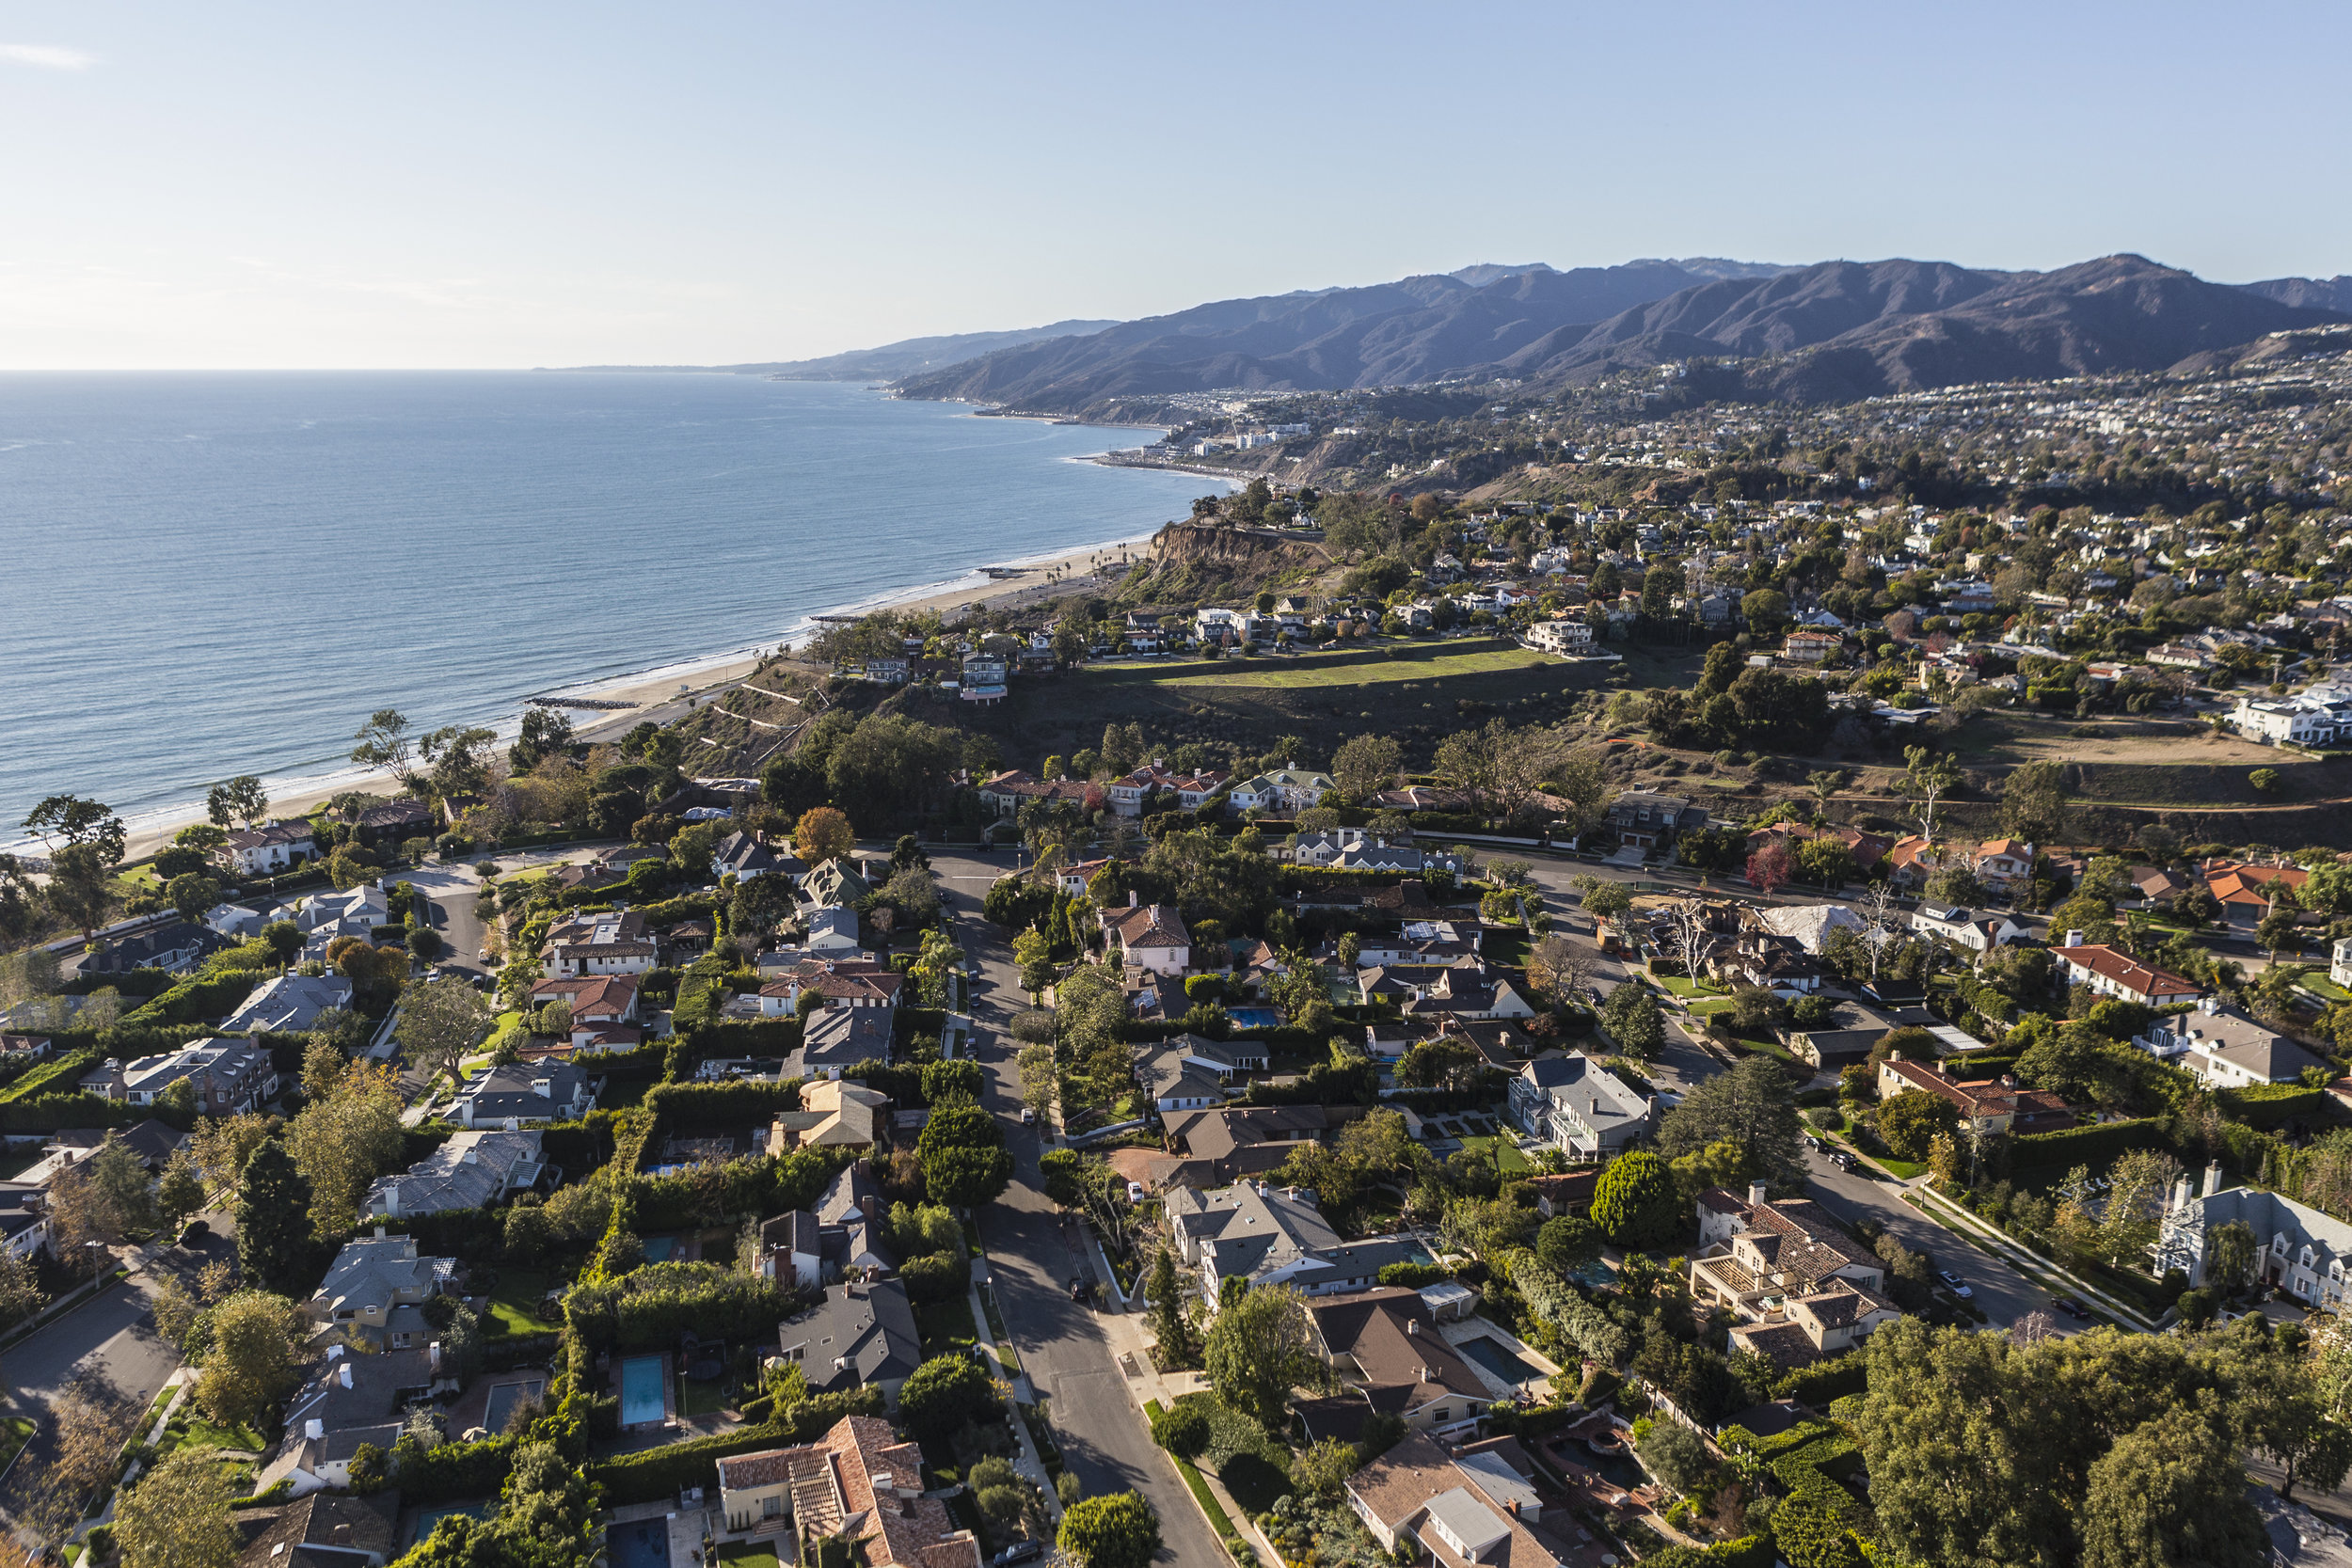 Pacific Palisades - This affluent residential neighborhood is tucked between the Santa Monica Mountains and the Pacific Ocean. Temescal Gateway Park offers hiking trails with sweeping coastline views, and the sandy Will Rogers State Beach provides access to a 22-mile beachfront bike path.